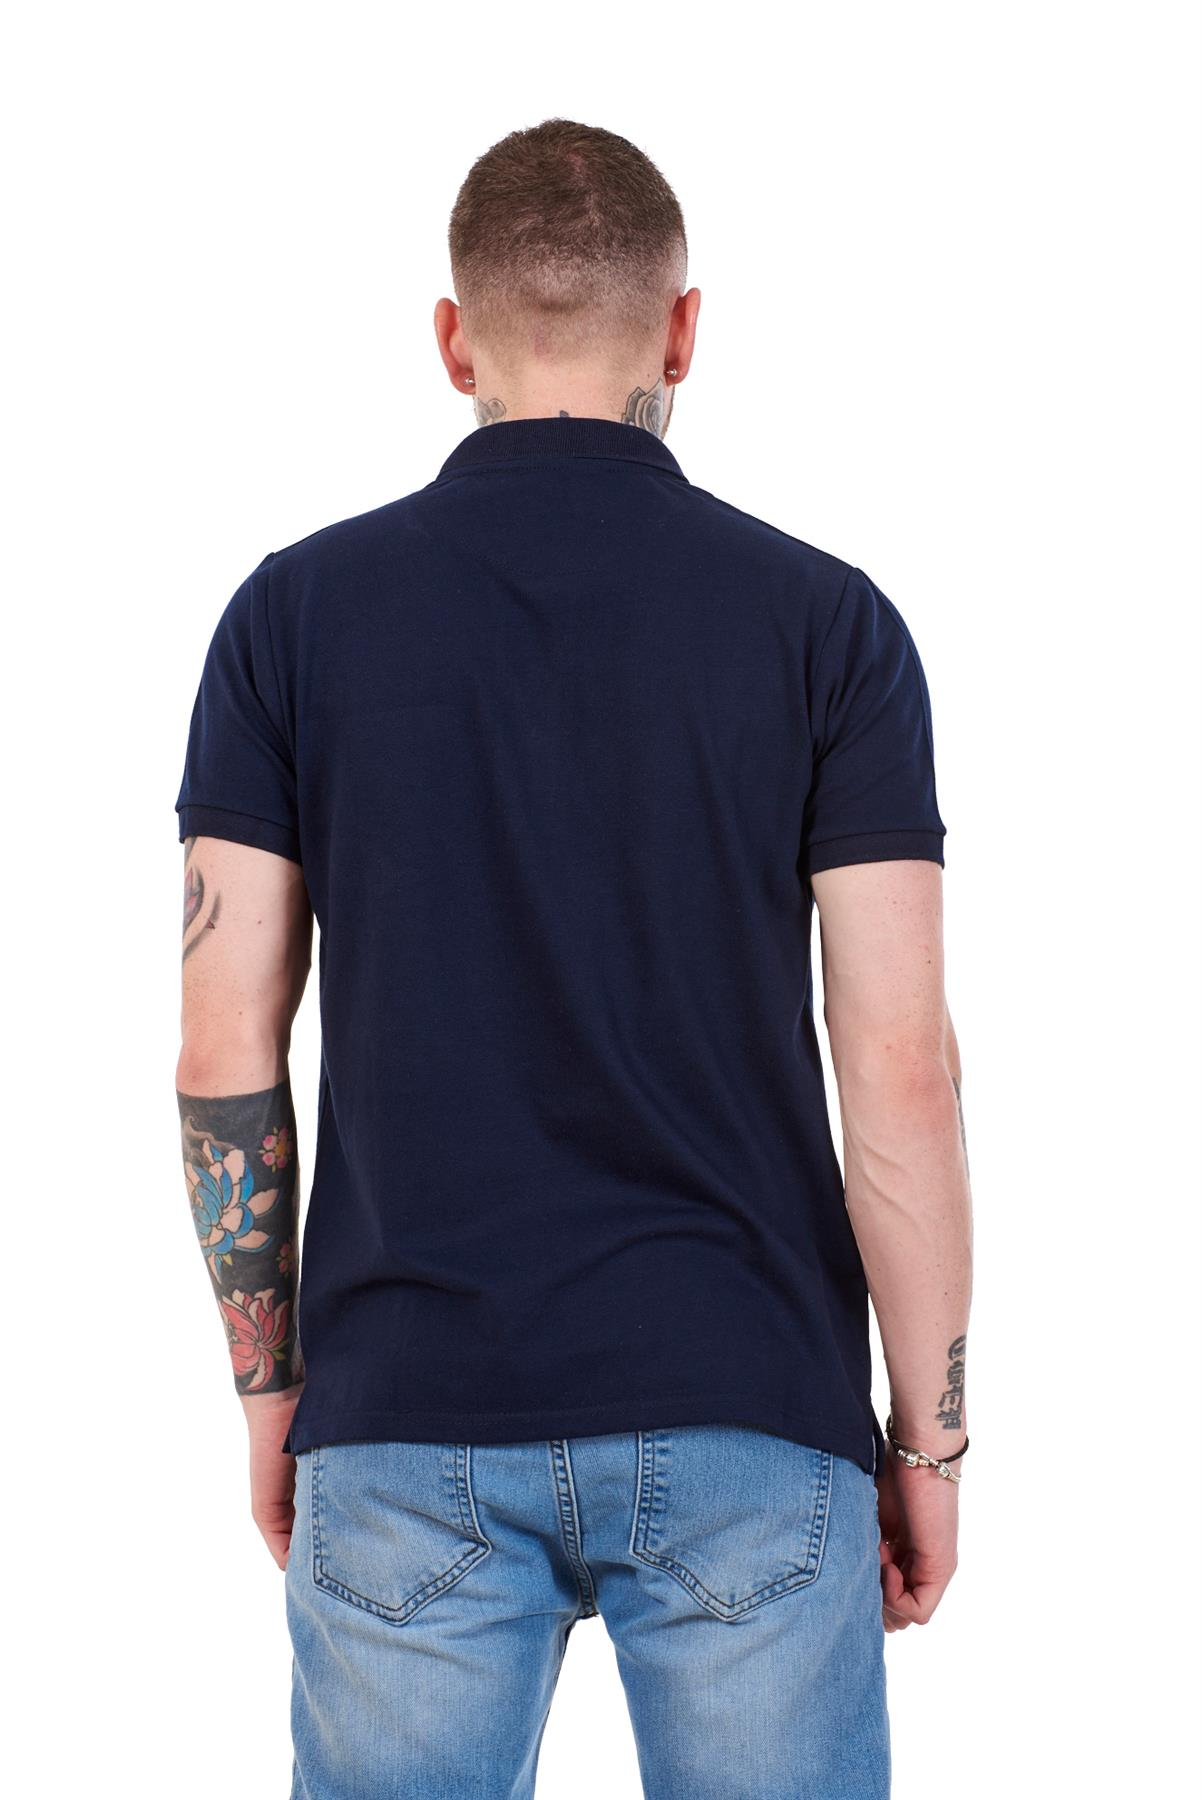 Mens-Cotton-T-Shirts-Regular-fit-Plain-Polo-Pocket-Casual-Formal-Shirt-Top-M-XXL thumbnail 22